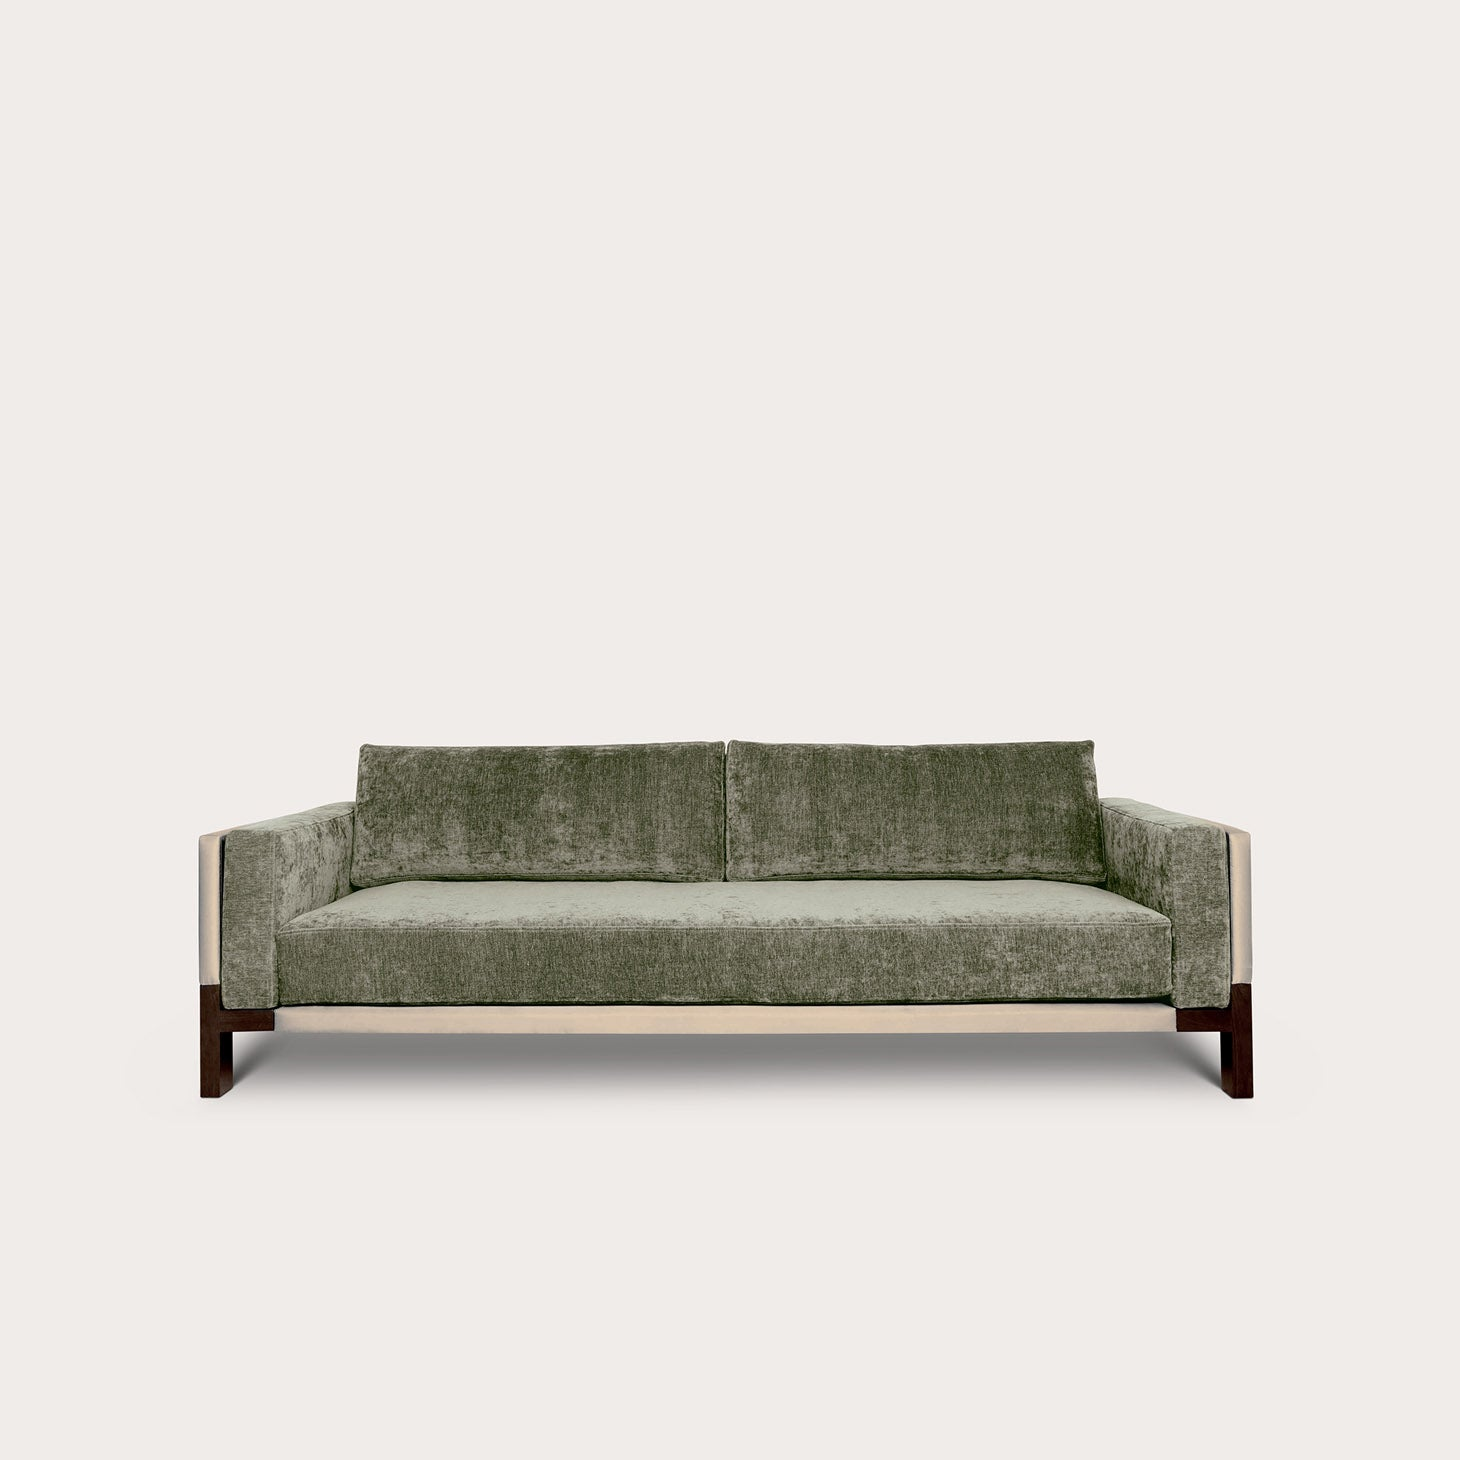 NOE Seating Christophe Delcourt Designer Furniture Sku: 008-240-10003